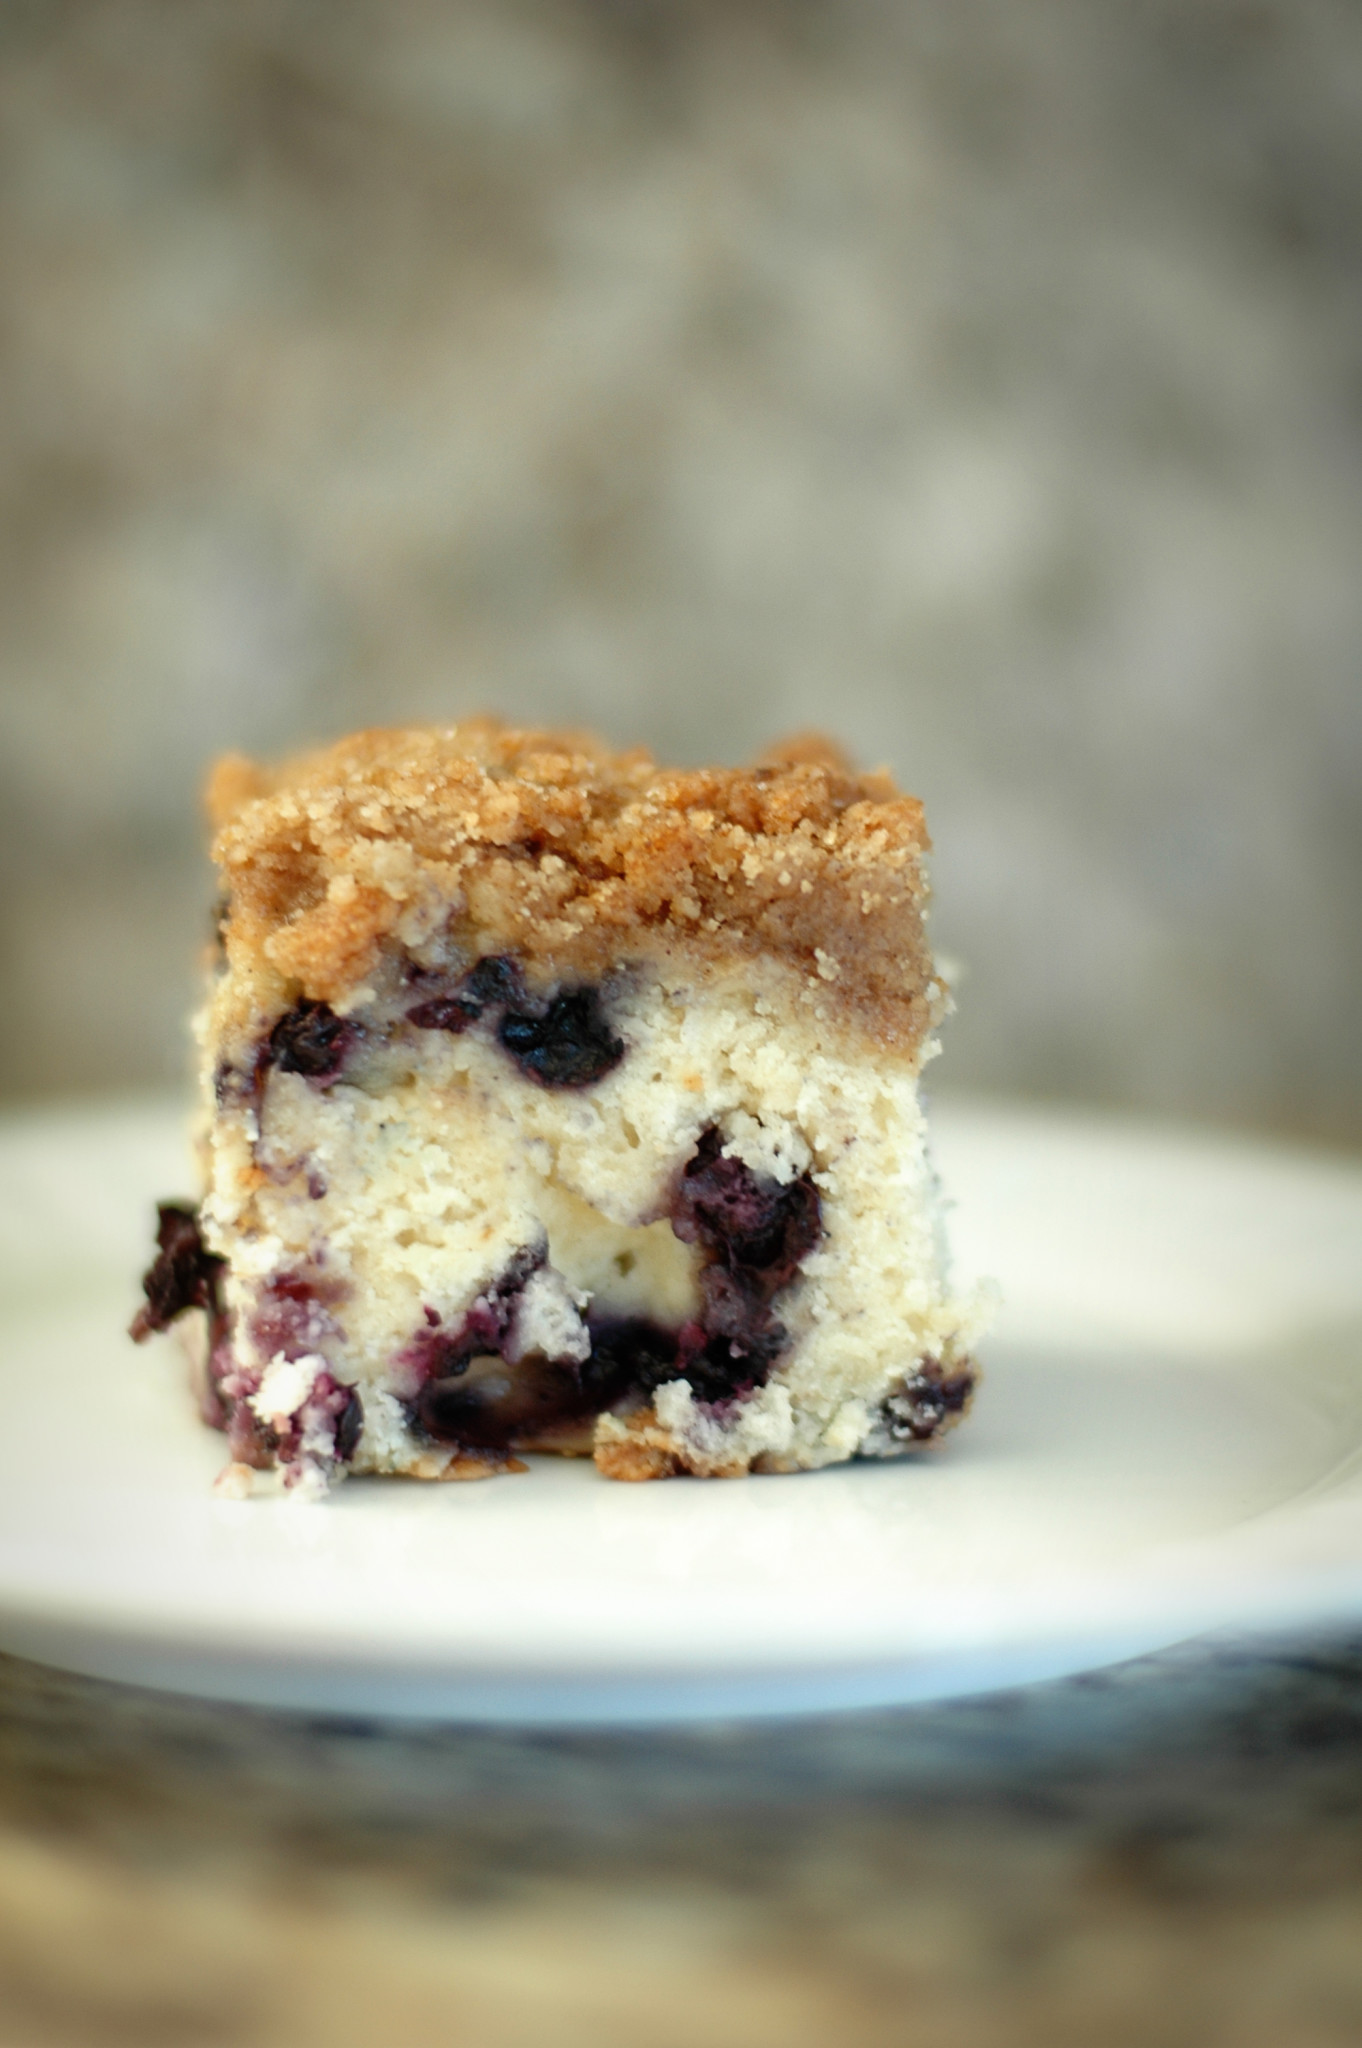 Blueberry buckle 2